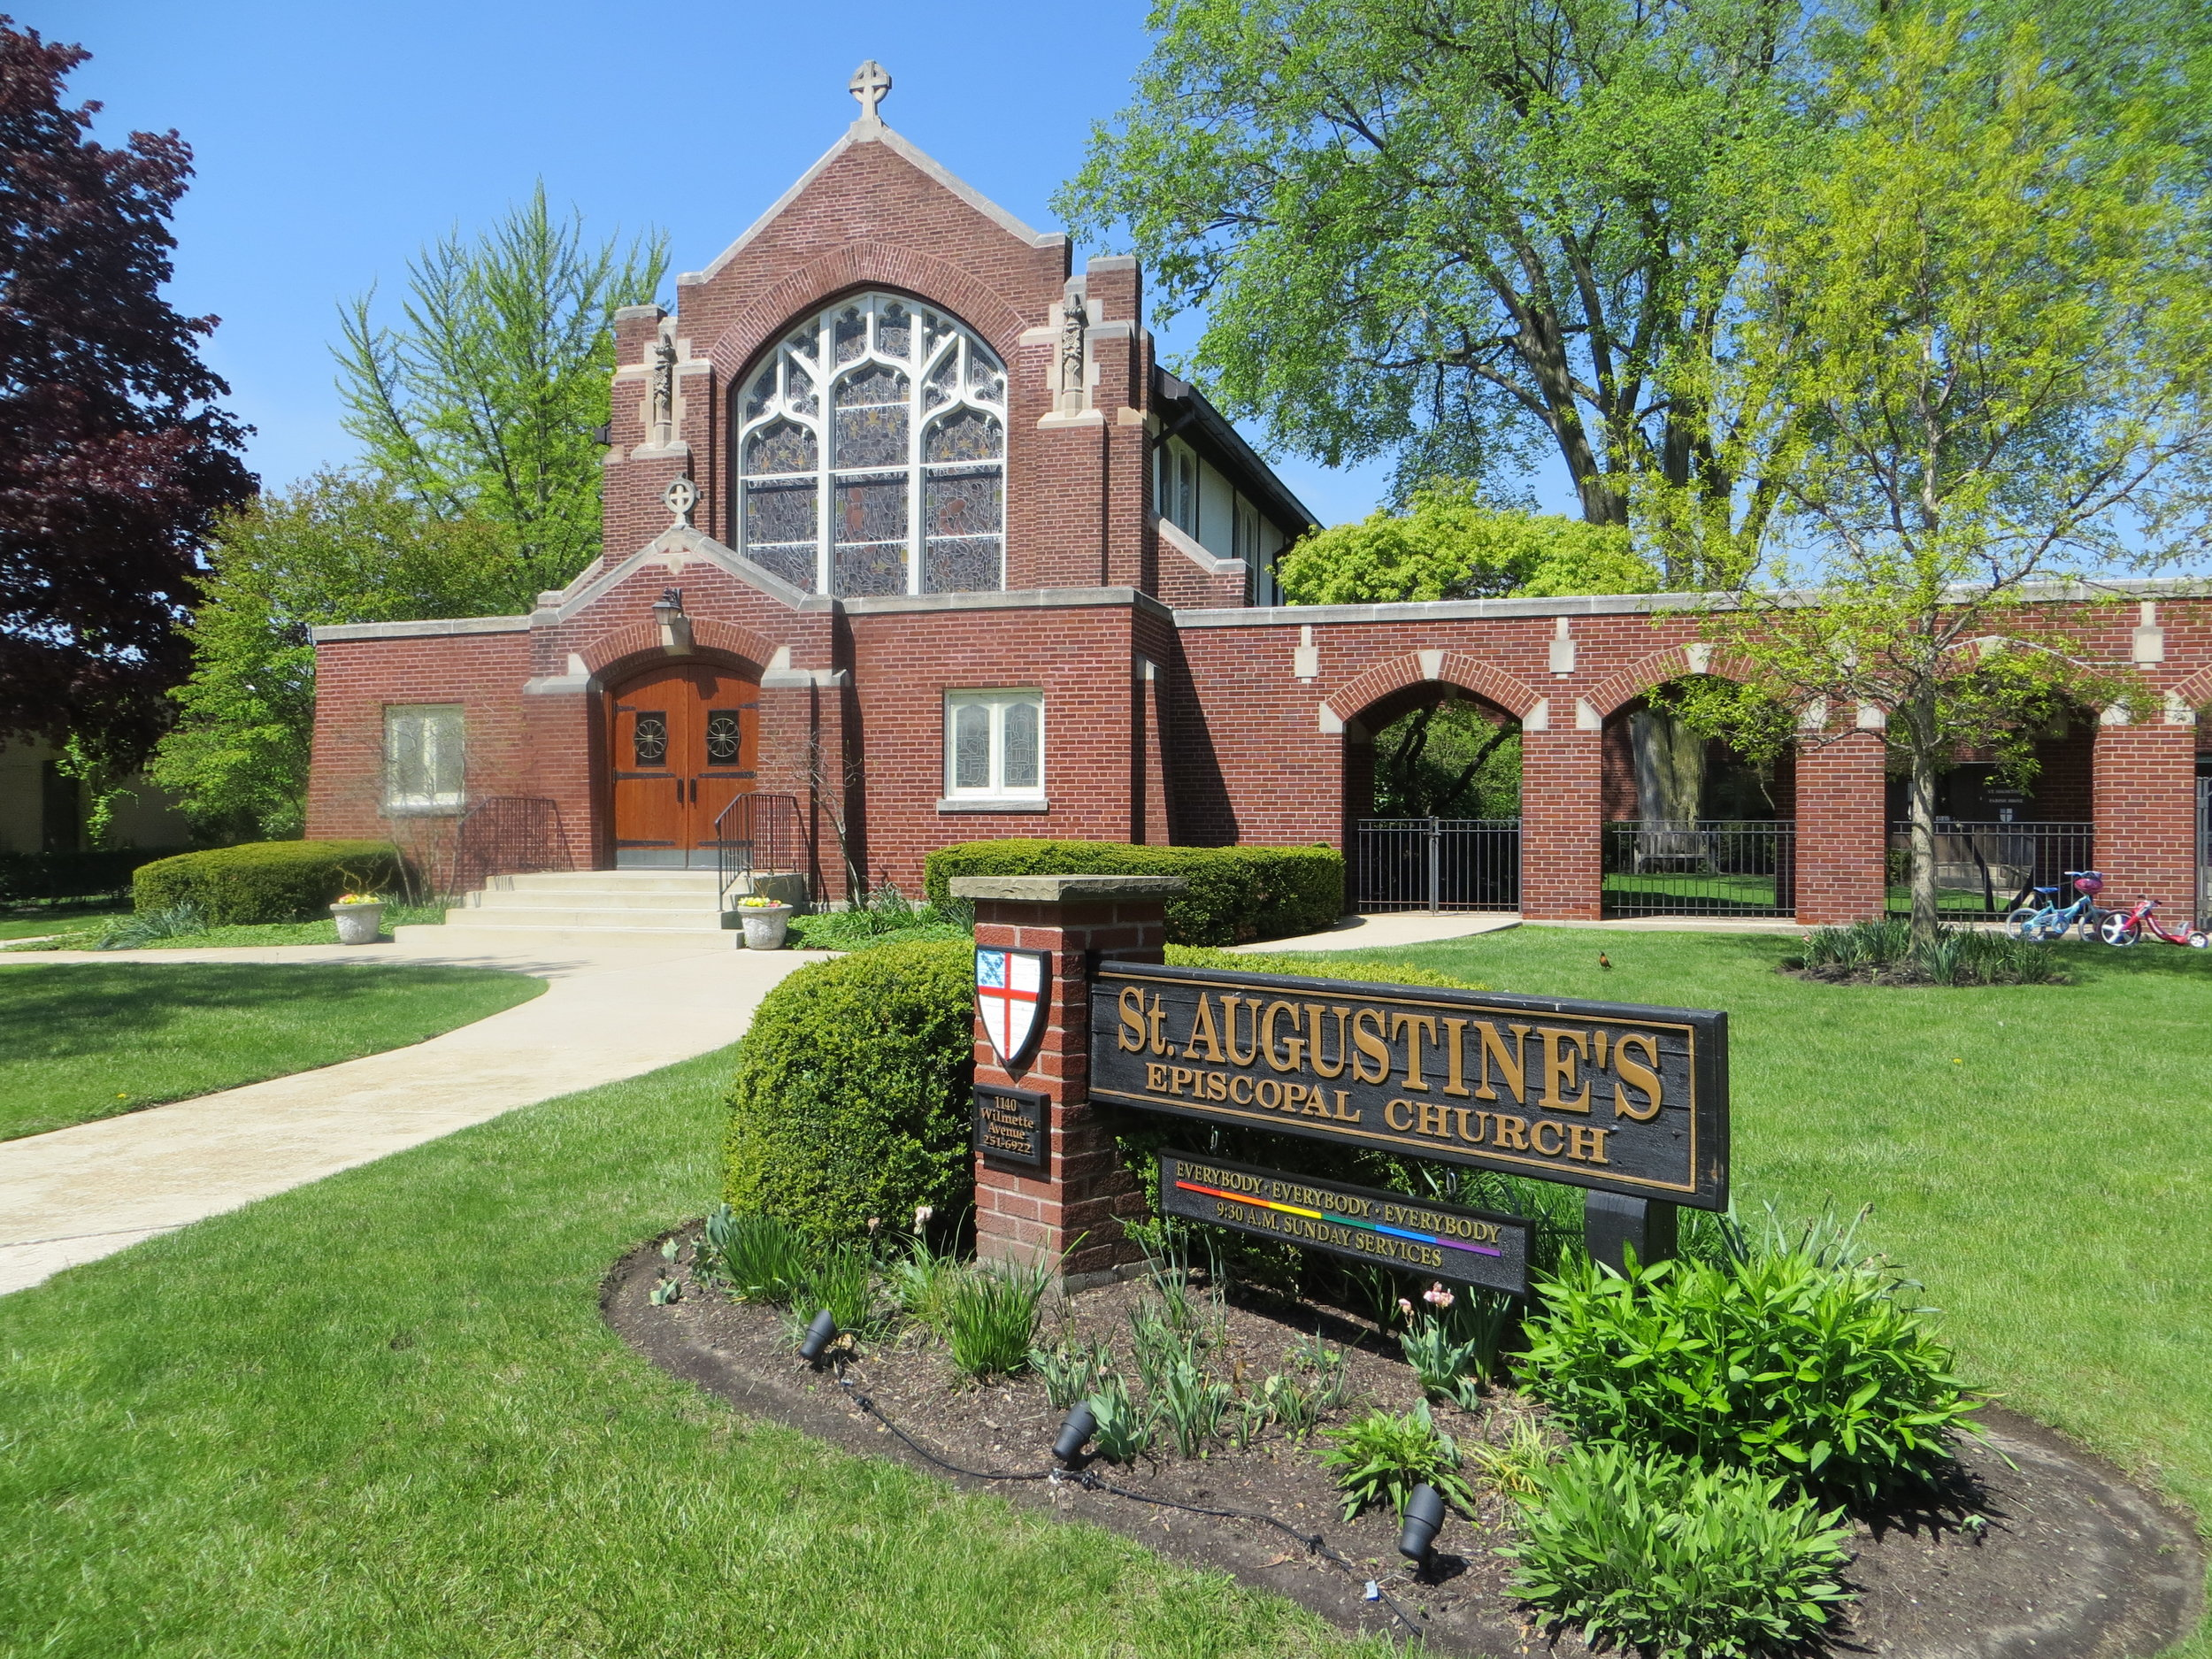 St. Augustine's Church today